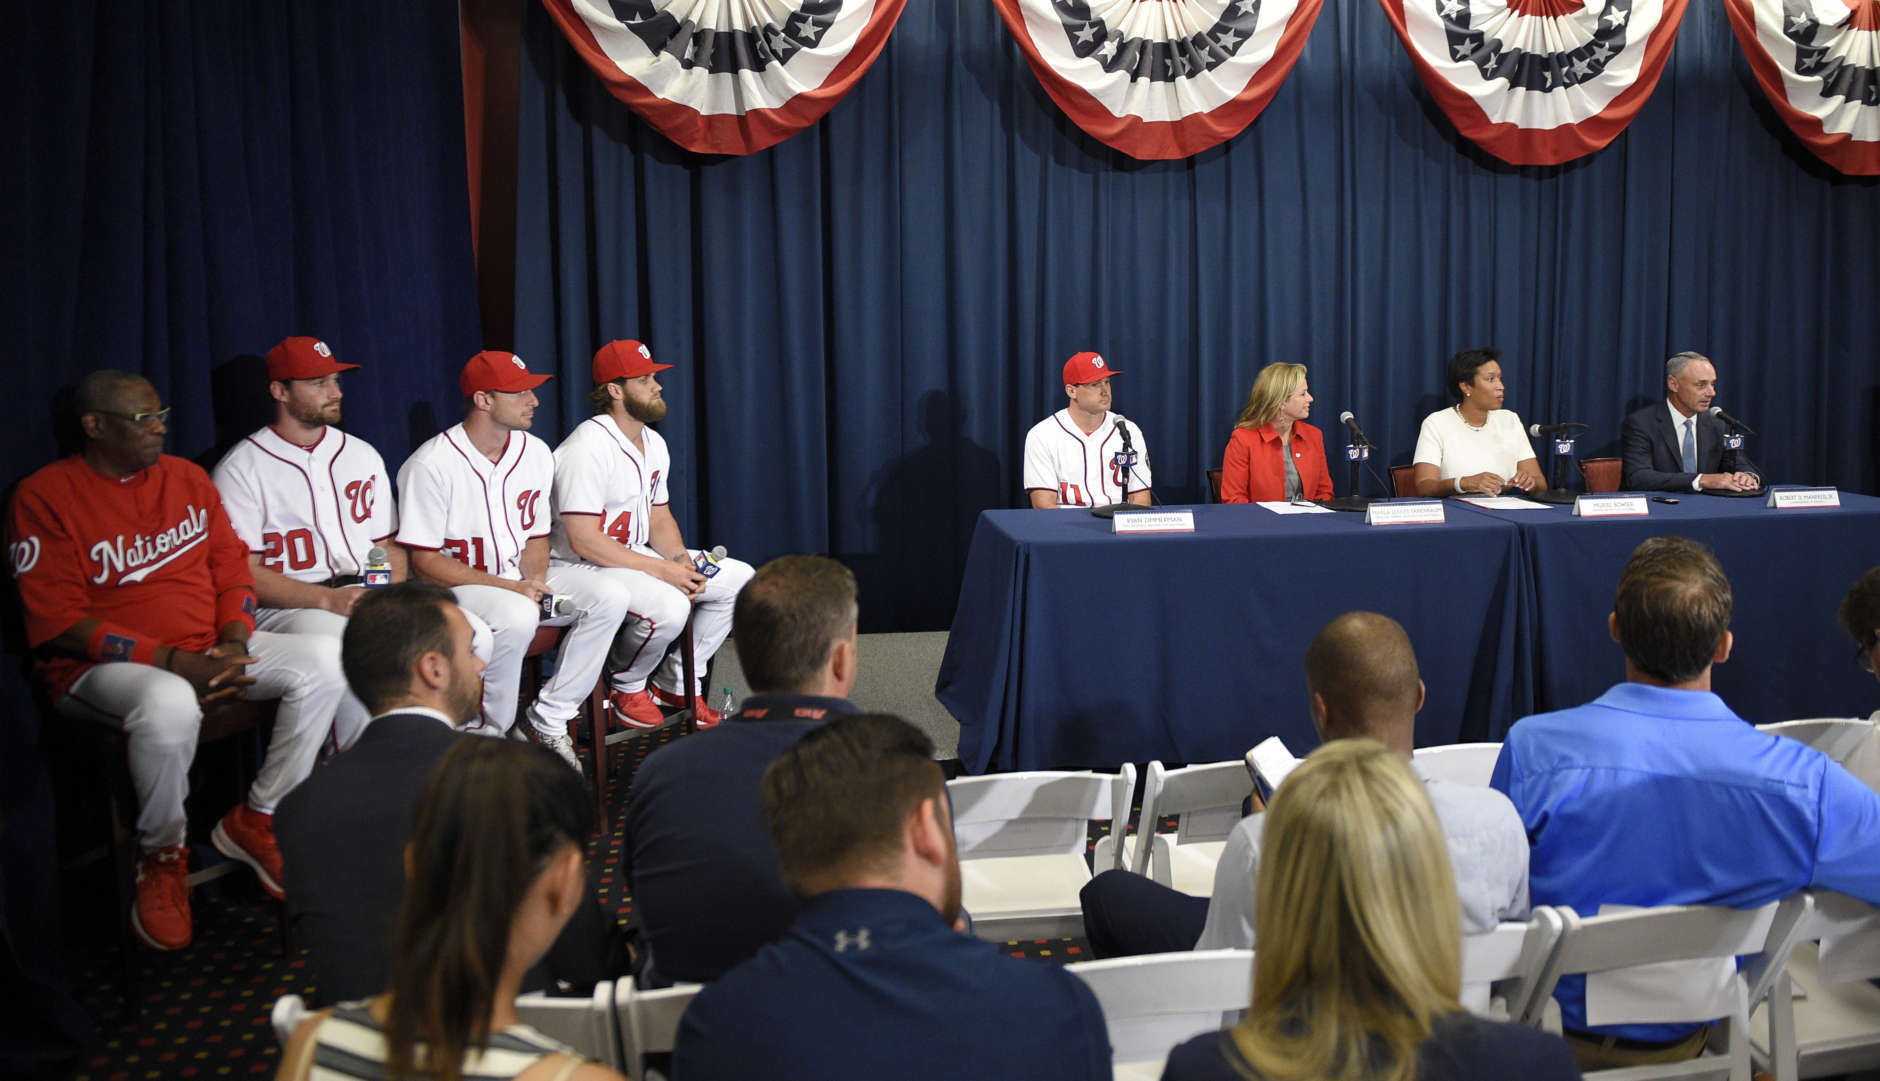 From right to left, Rob Manfred, Commissioner of Baseball, Muriel Bowser, Mayor of the District of Columbia; Marla Lerner Tanenbaum, Washington Nationals' Ryan Zimmerman, Bryce Harper, Max Scherzer, Daniel Murphy, and manager Dusty Baker during a baseball press conference to unveil the 2018 MLB All-Star Game logo, Wednesday, July 26, 2017, in Washington. (AP Photo/Nick Wass)